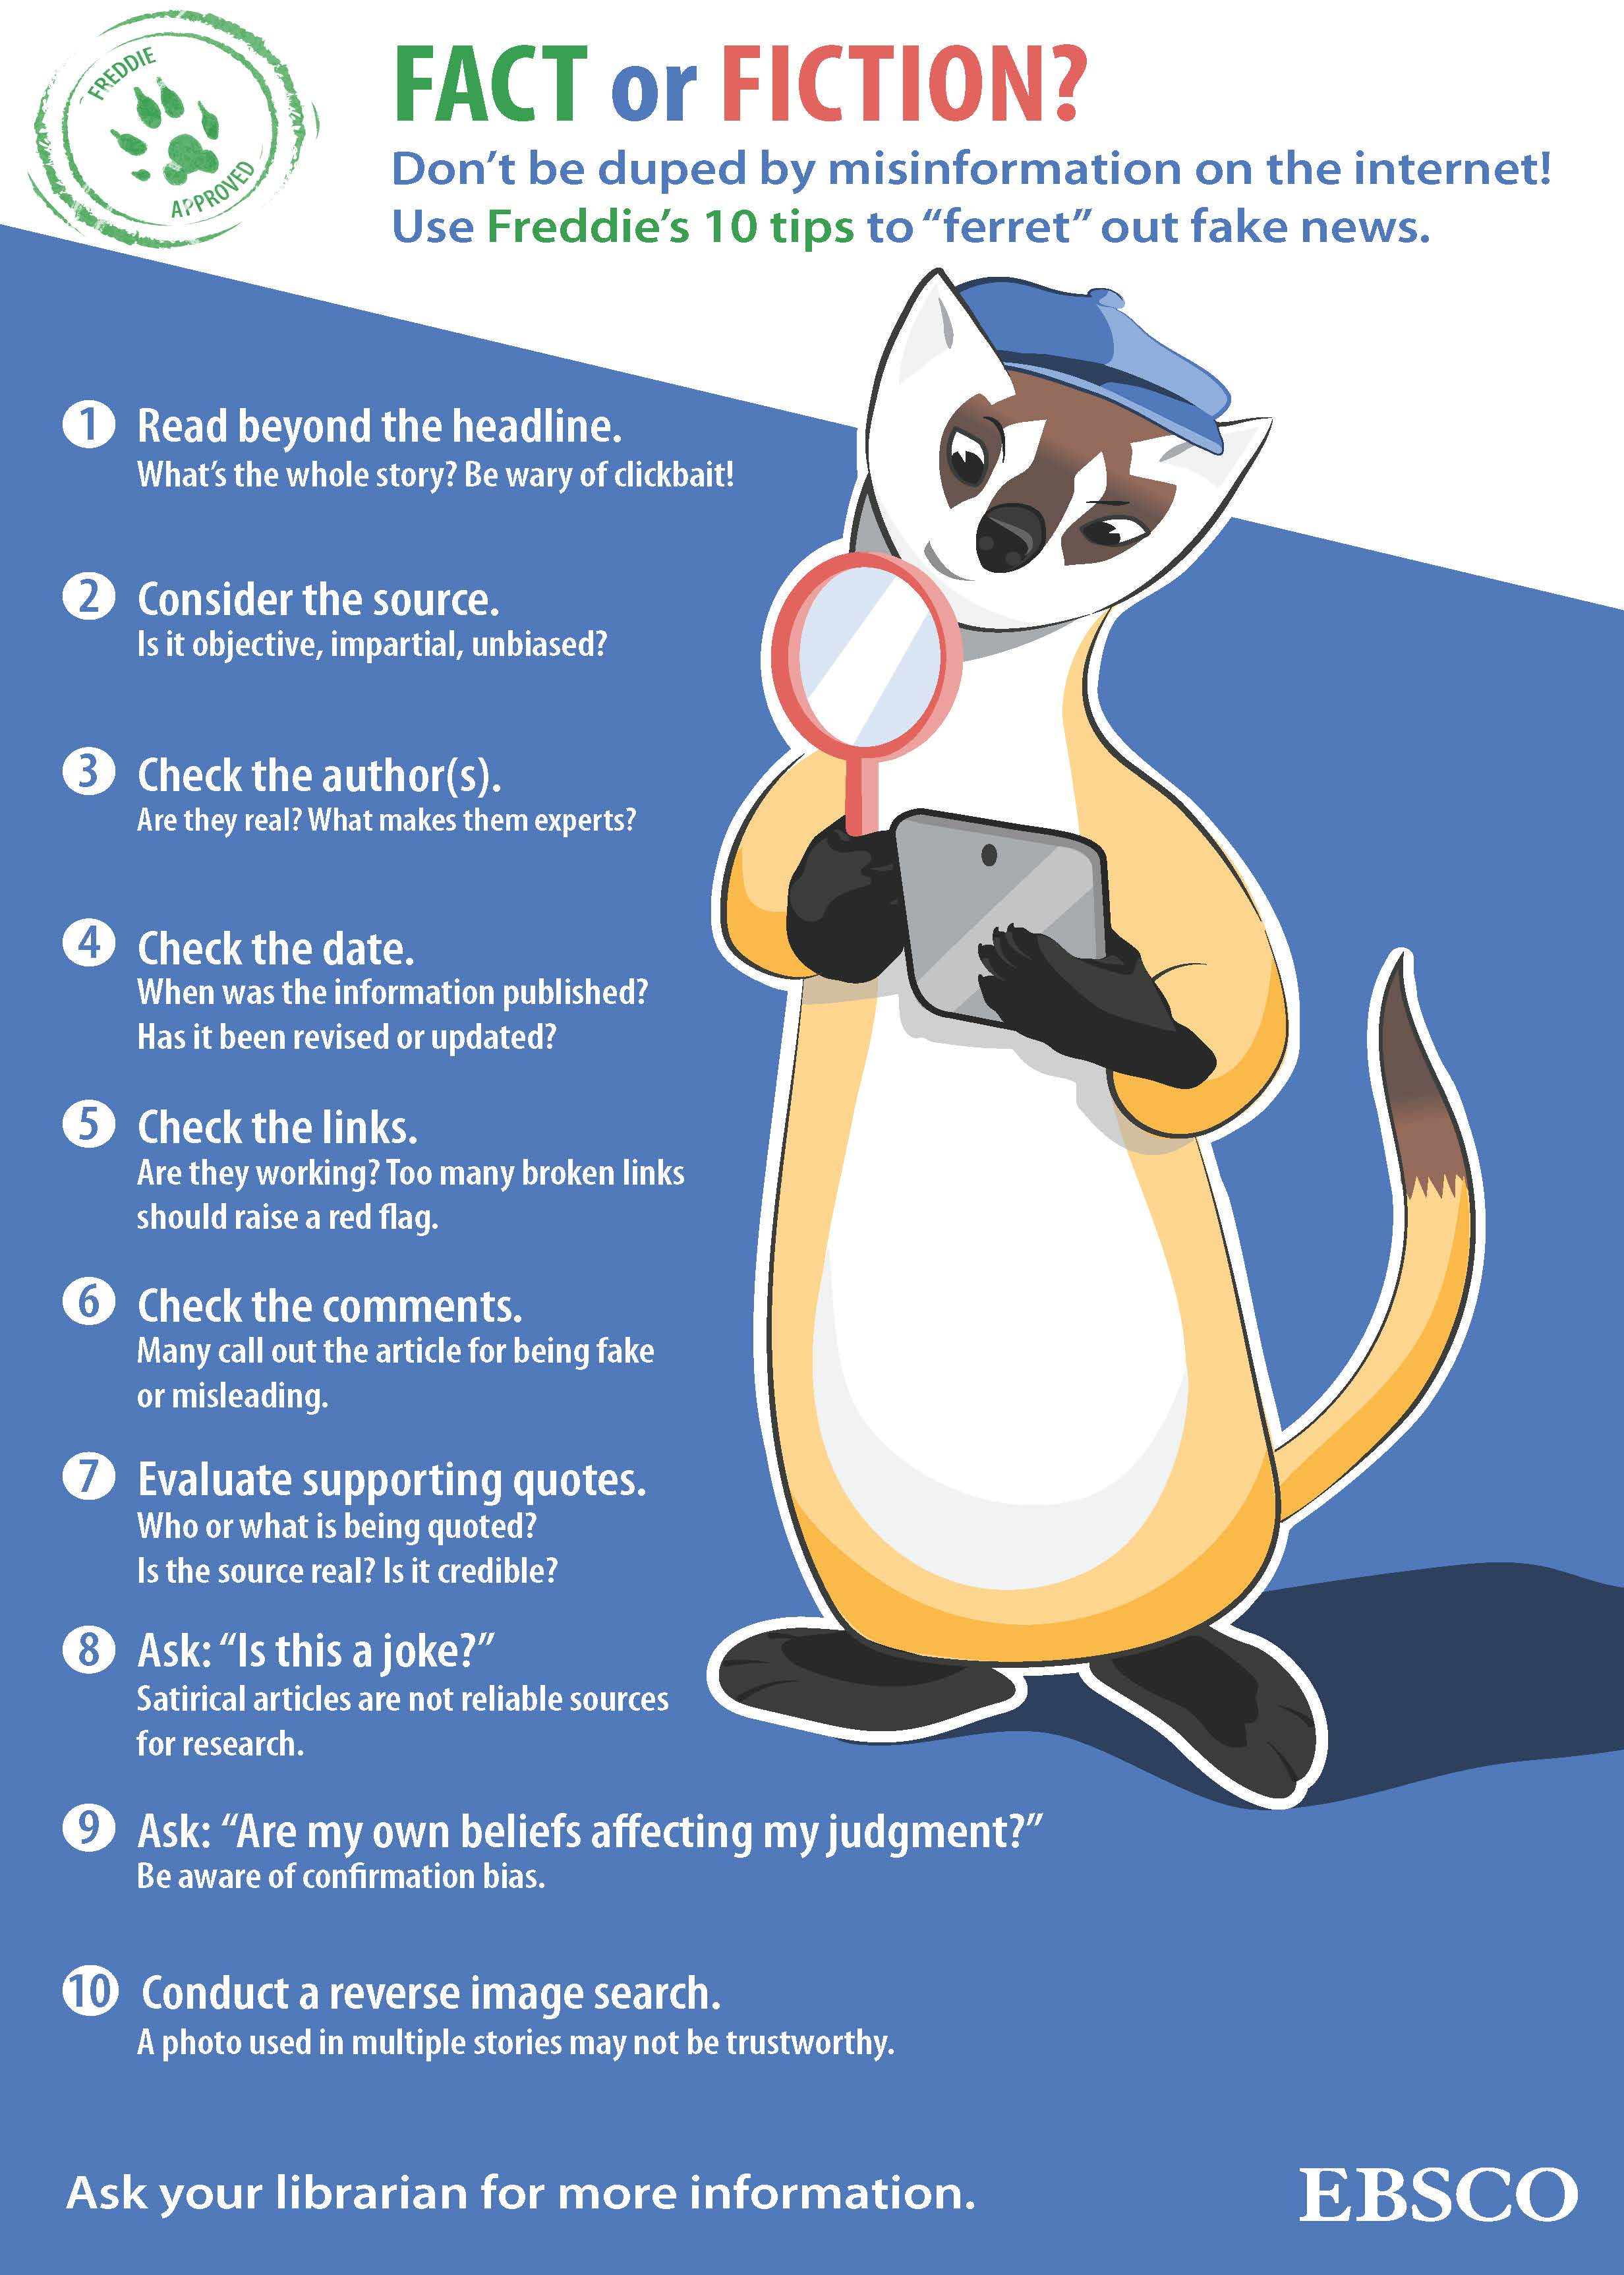 Ferret Out Fake News (EBSCO)